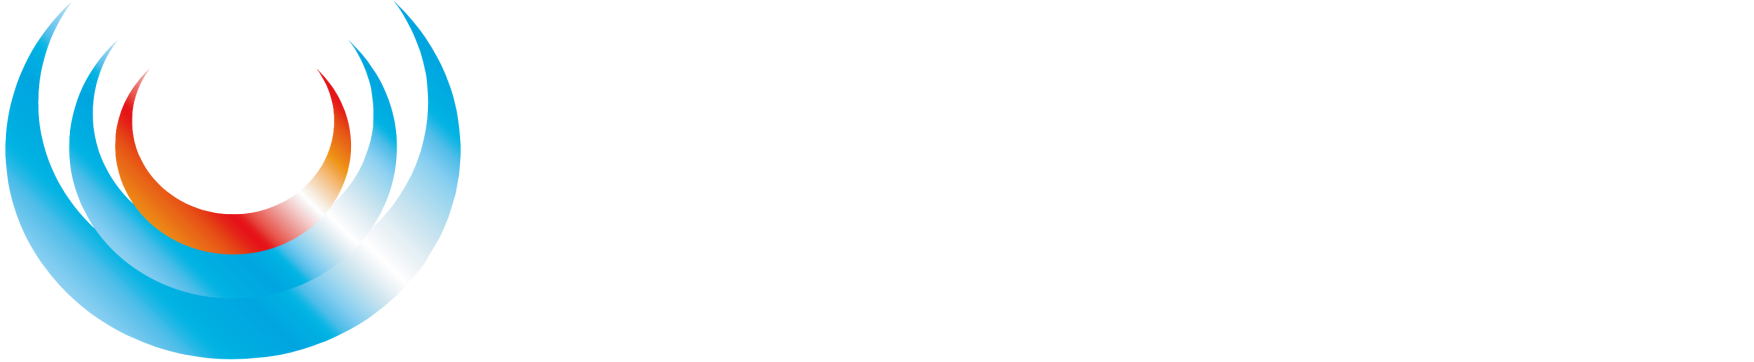 Ambulanter Pflegedienst Regina Zukanovic GmbH